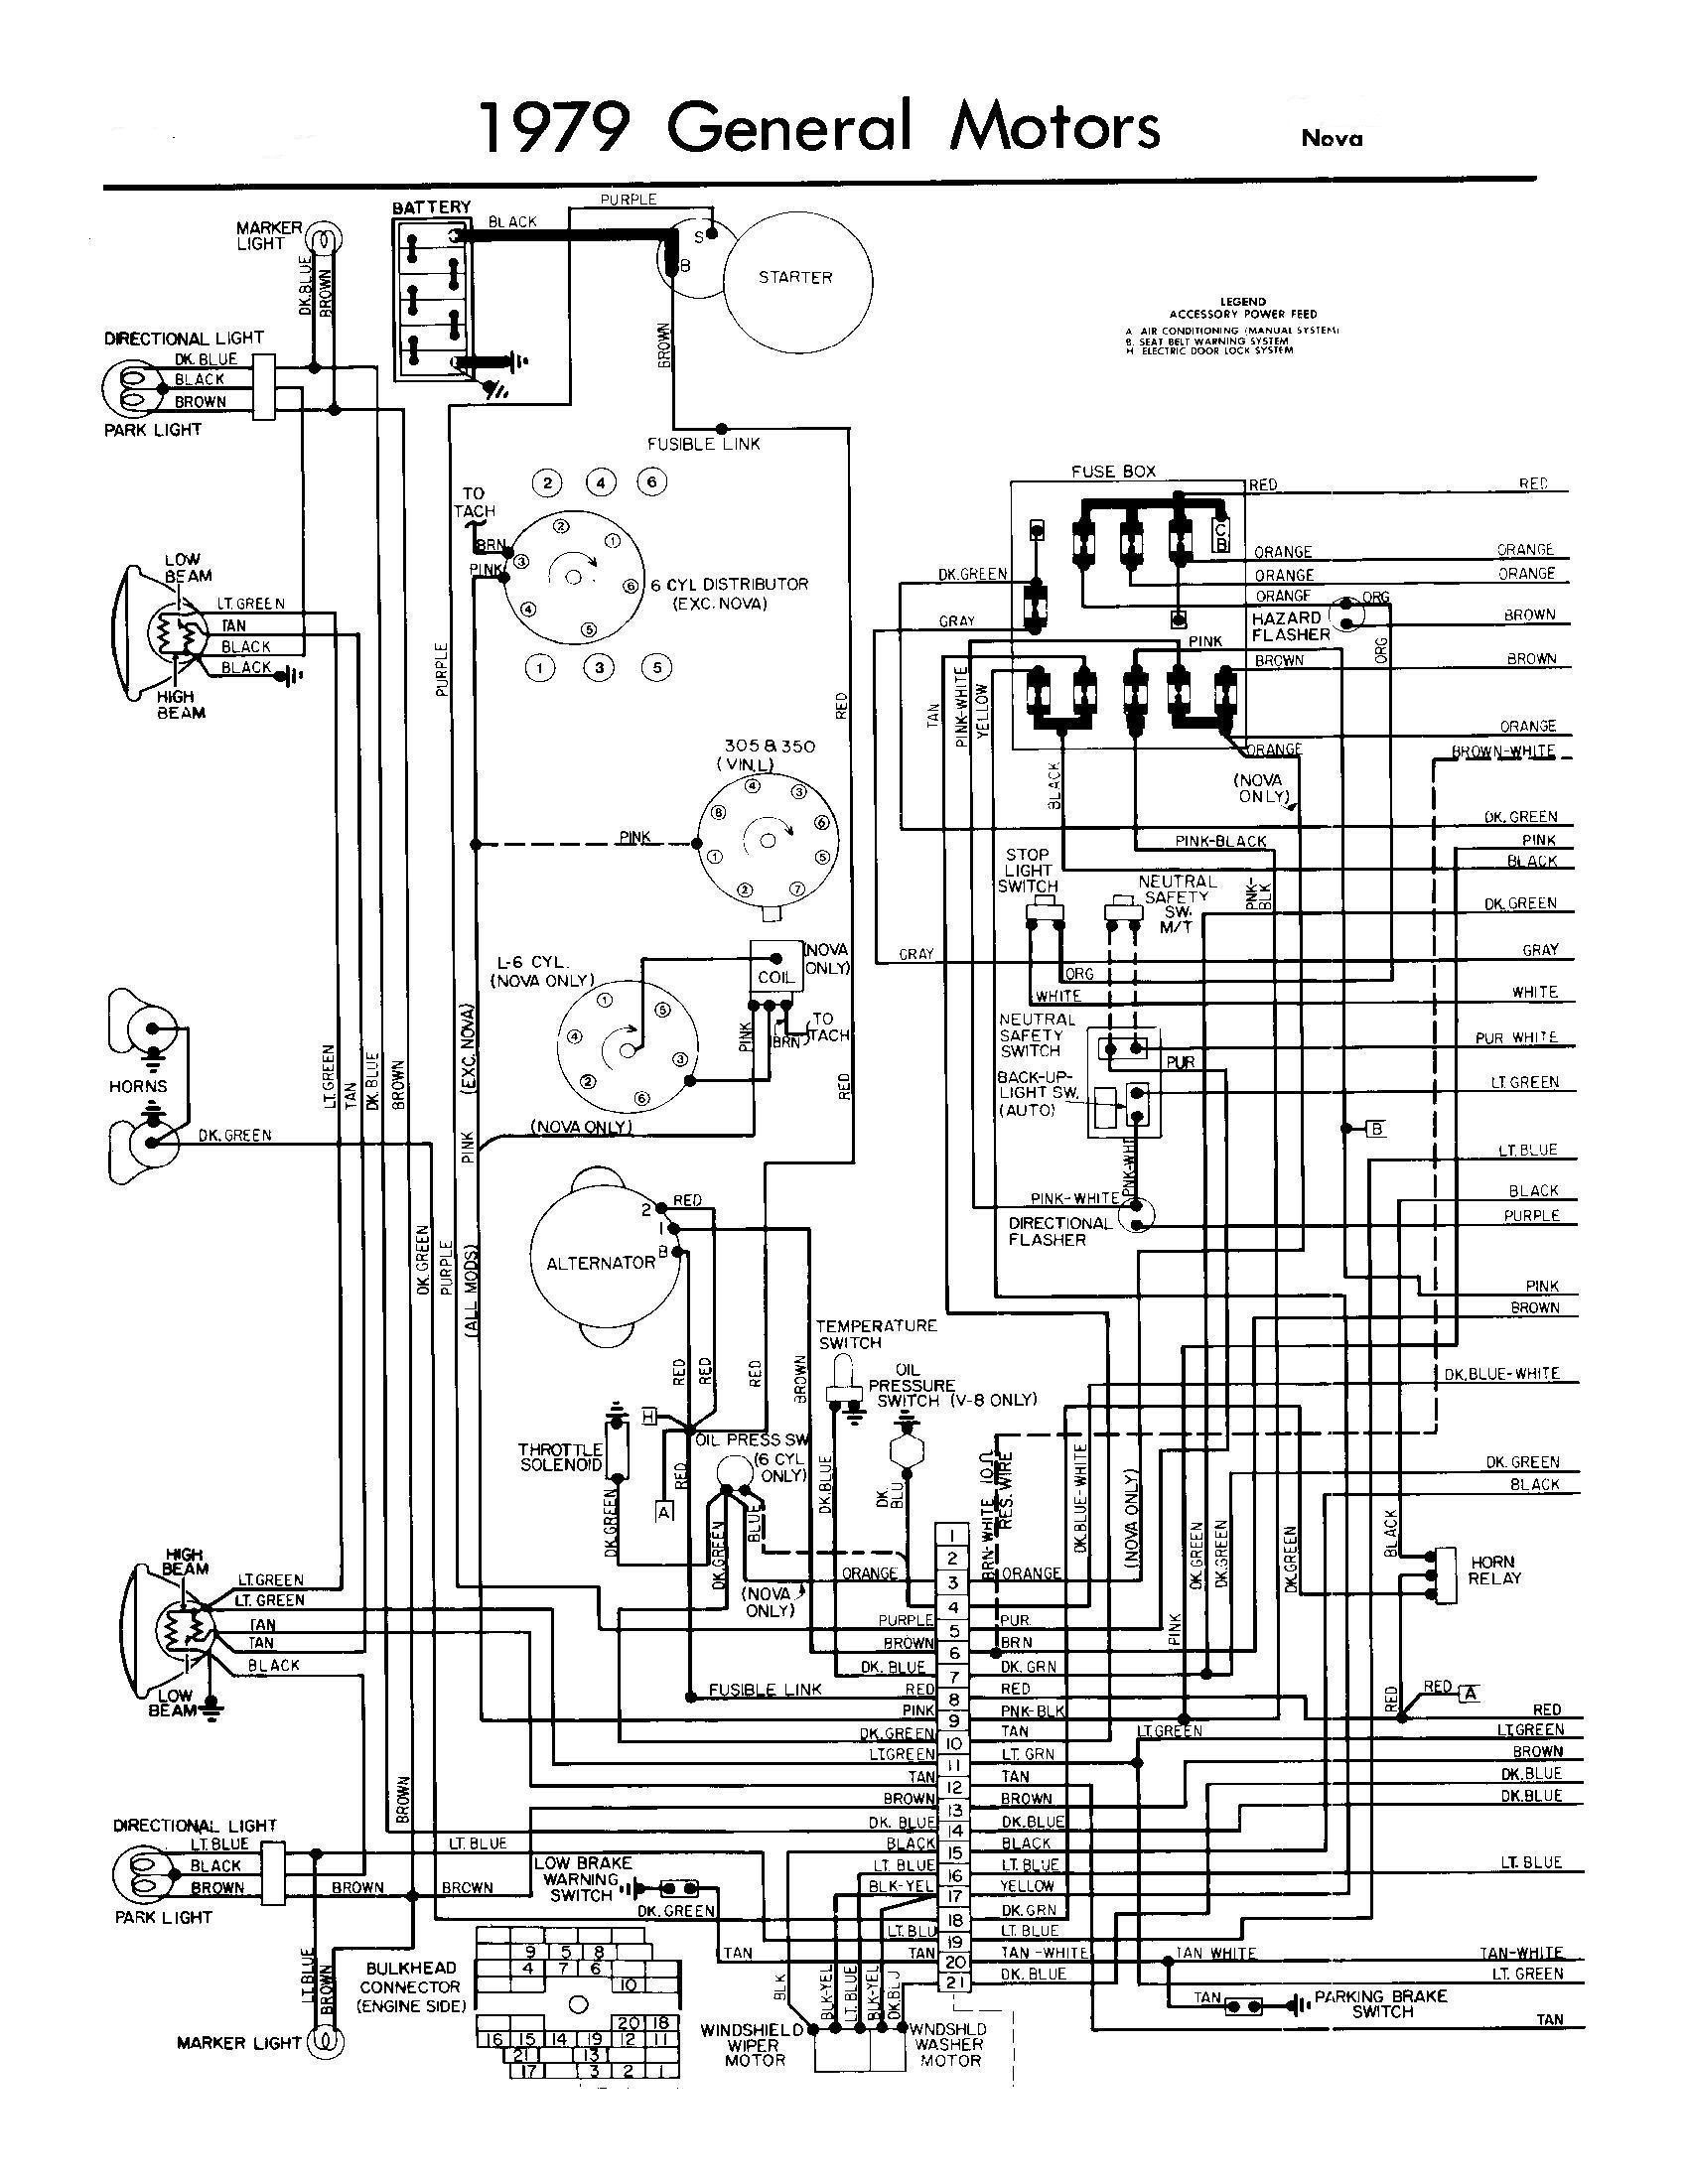 Wiring Diagram On 76 Chevy Truck - Wiring Diagram Data - 1982 Chevy Truck Wiring Diagram